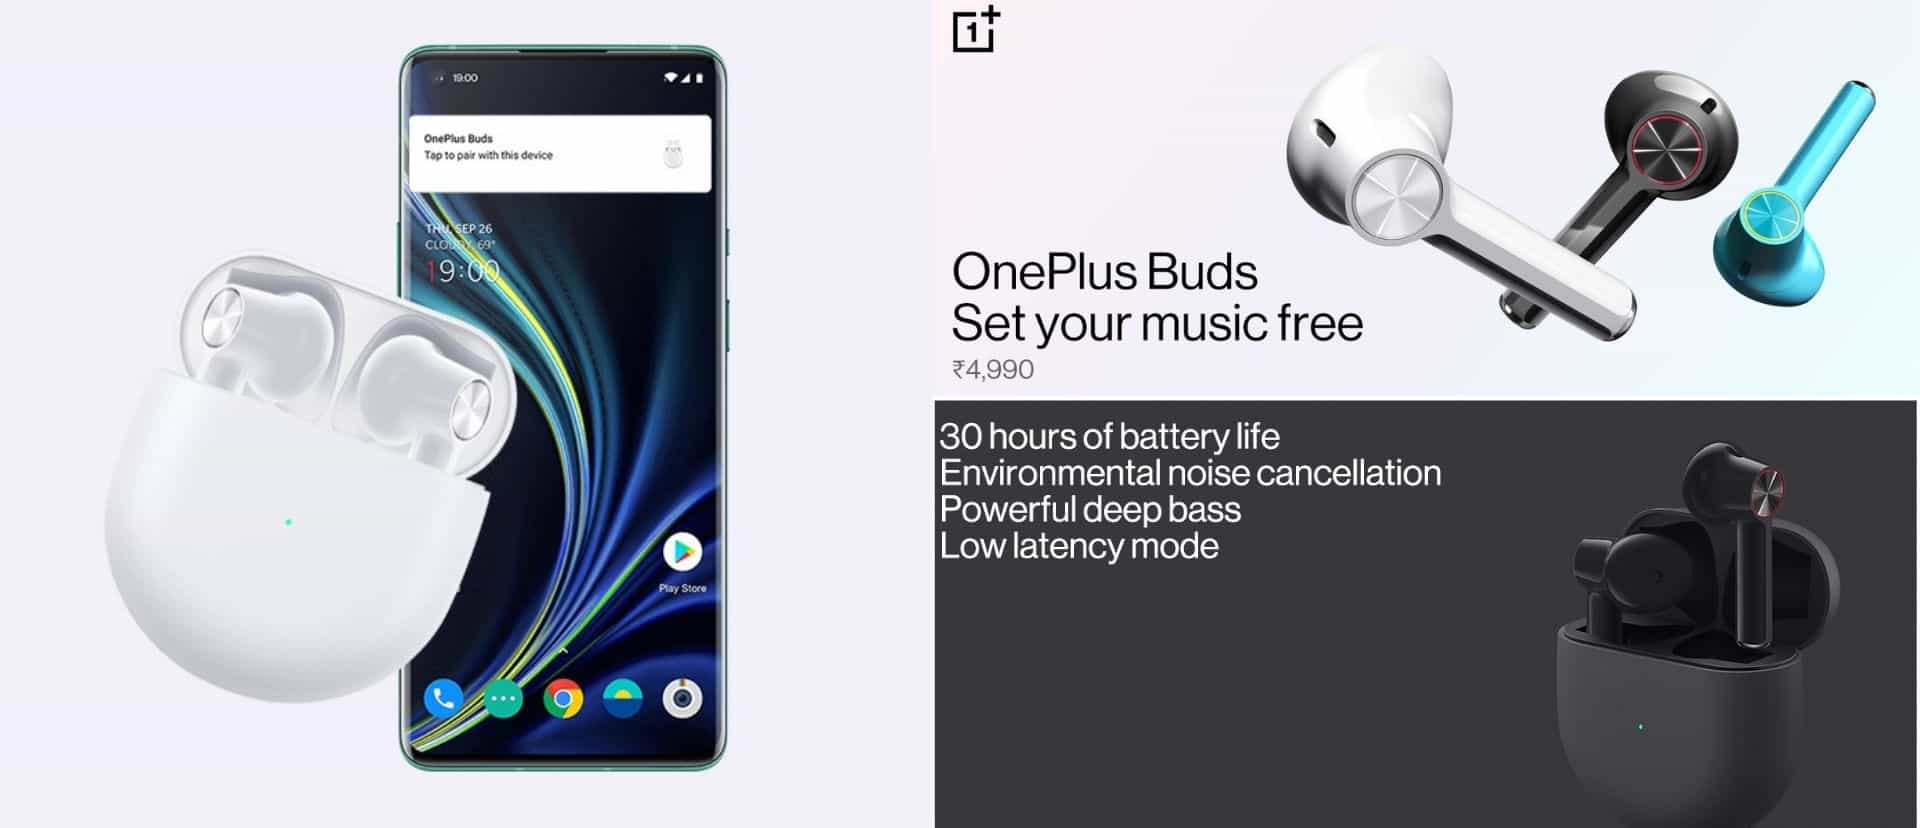 OnePlus Buds Review